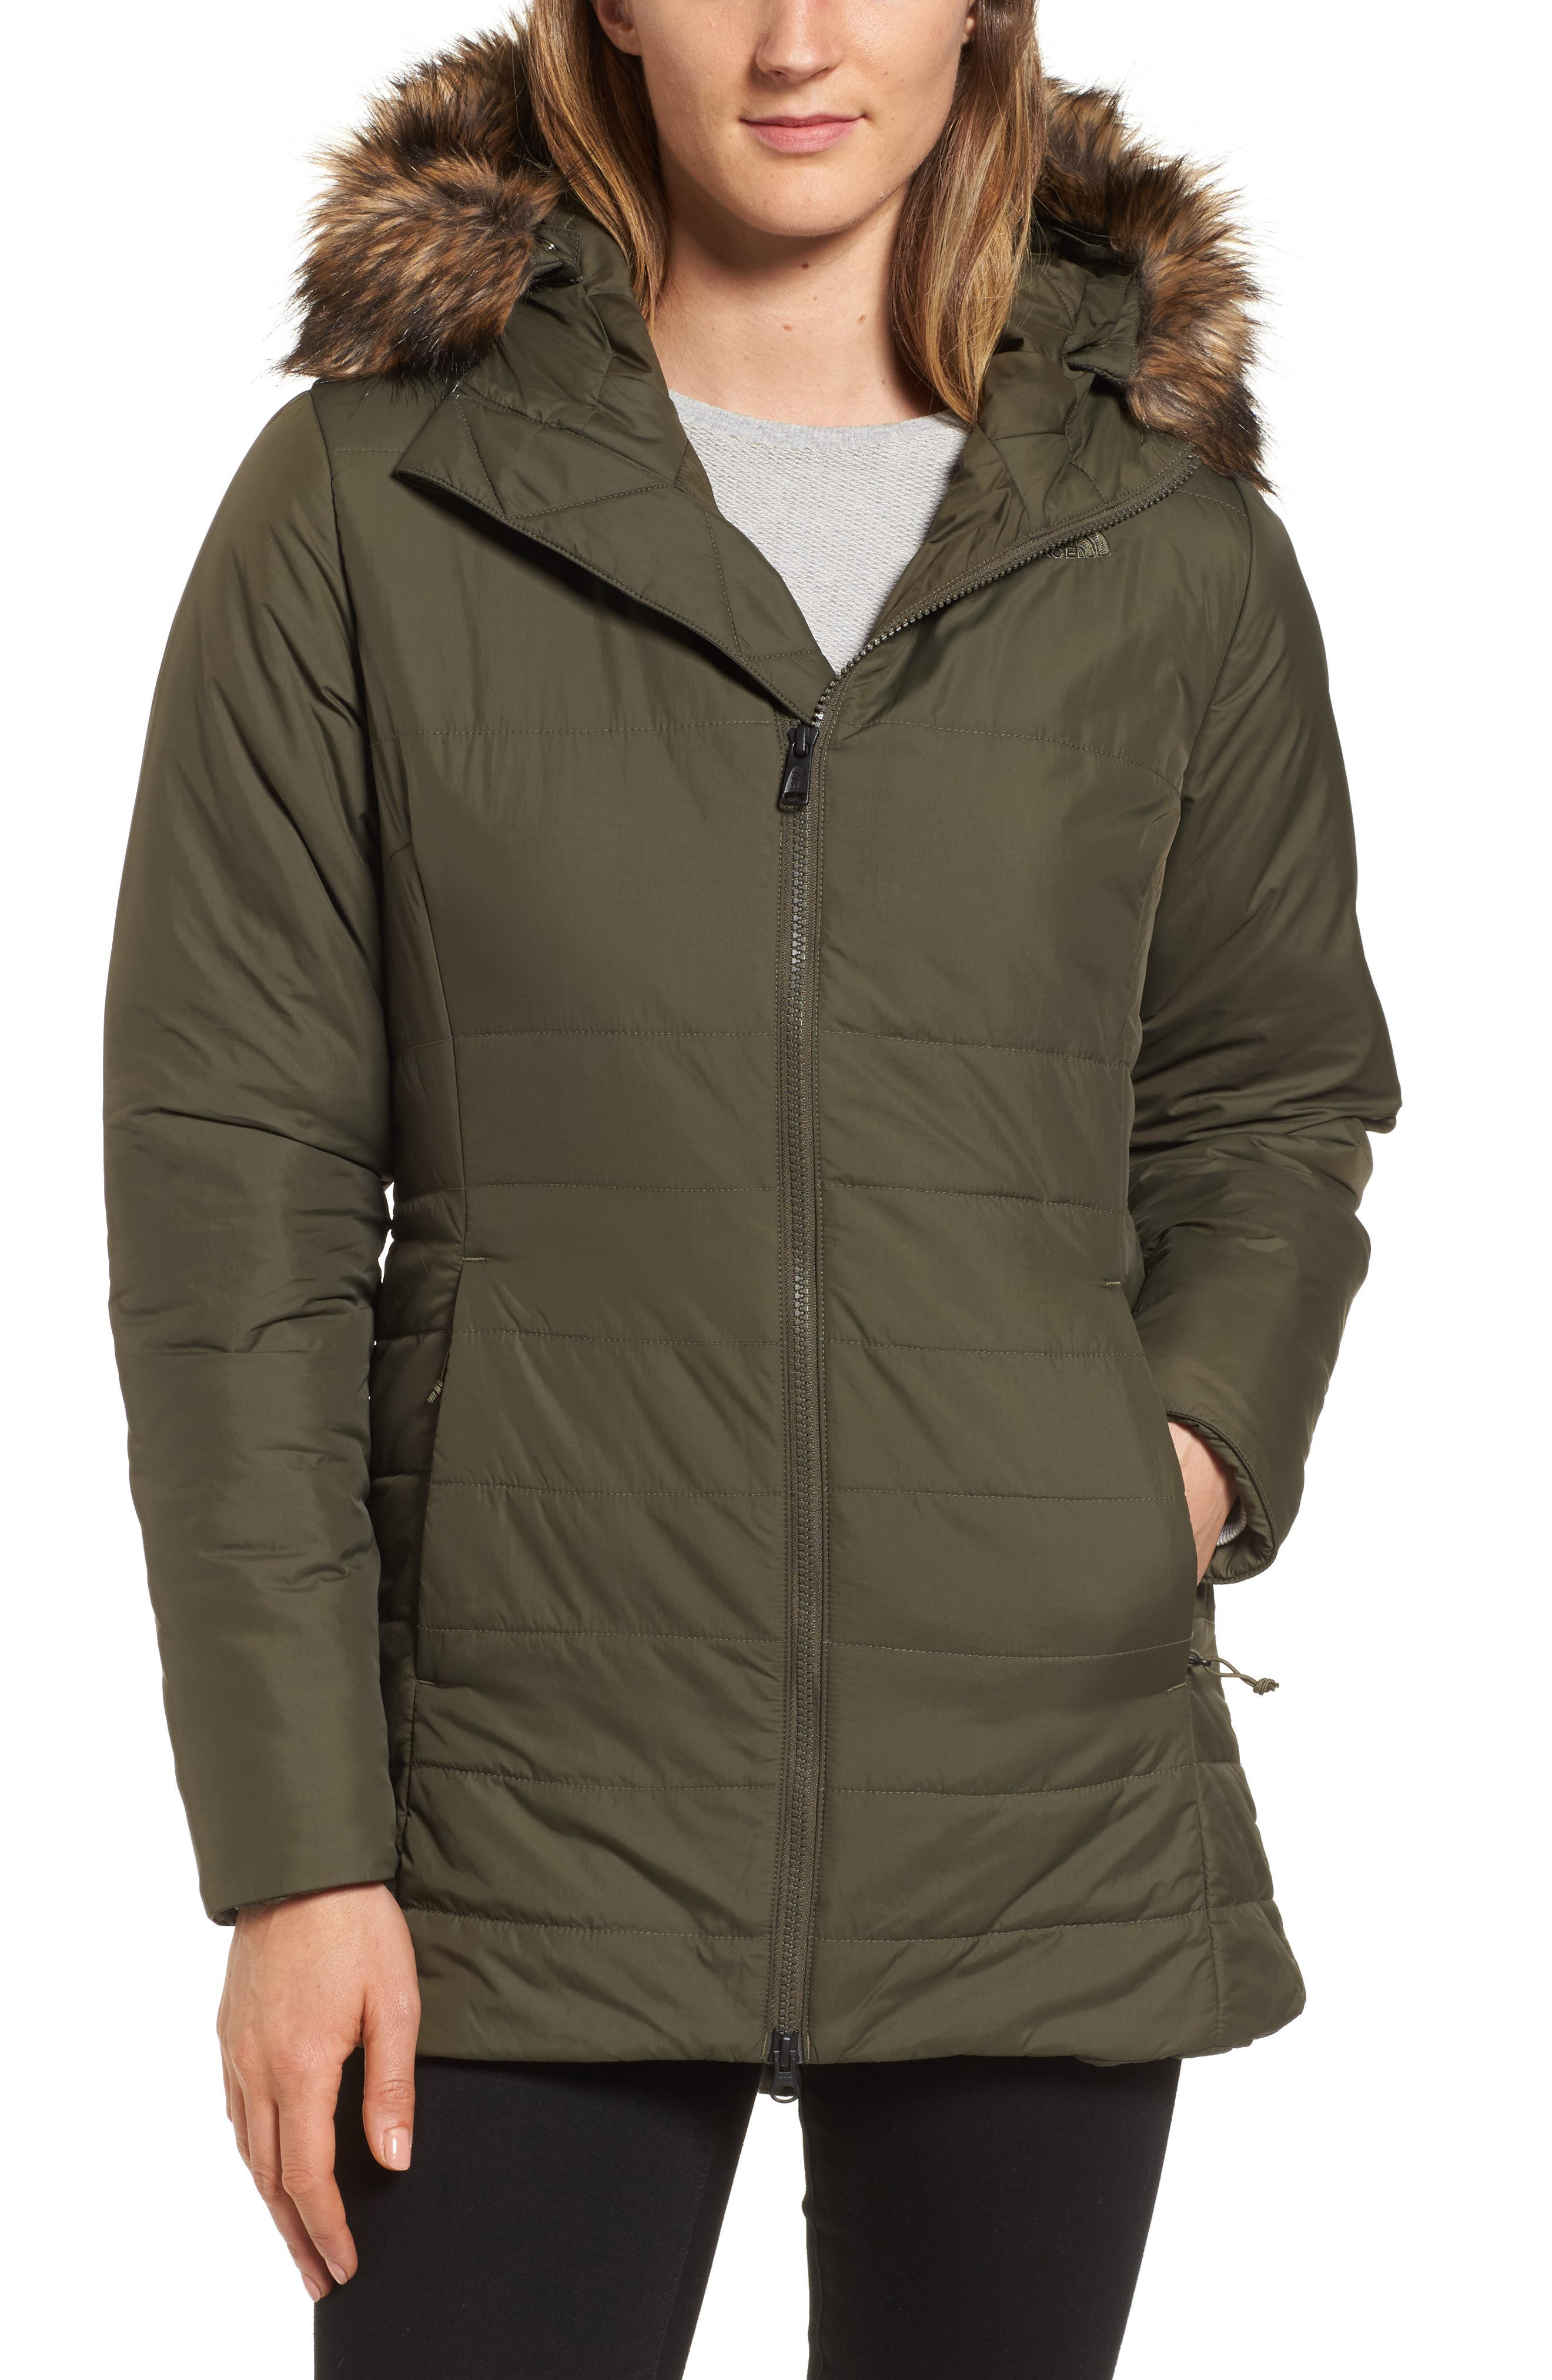 Harway Heatseeker<sup>™</sup> Water-Resistant Jacket with Faux Fur Trim,                             Main thumbnail 1, color,                             New Taupe Green